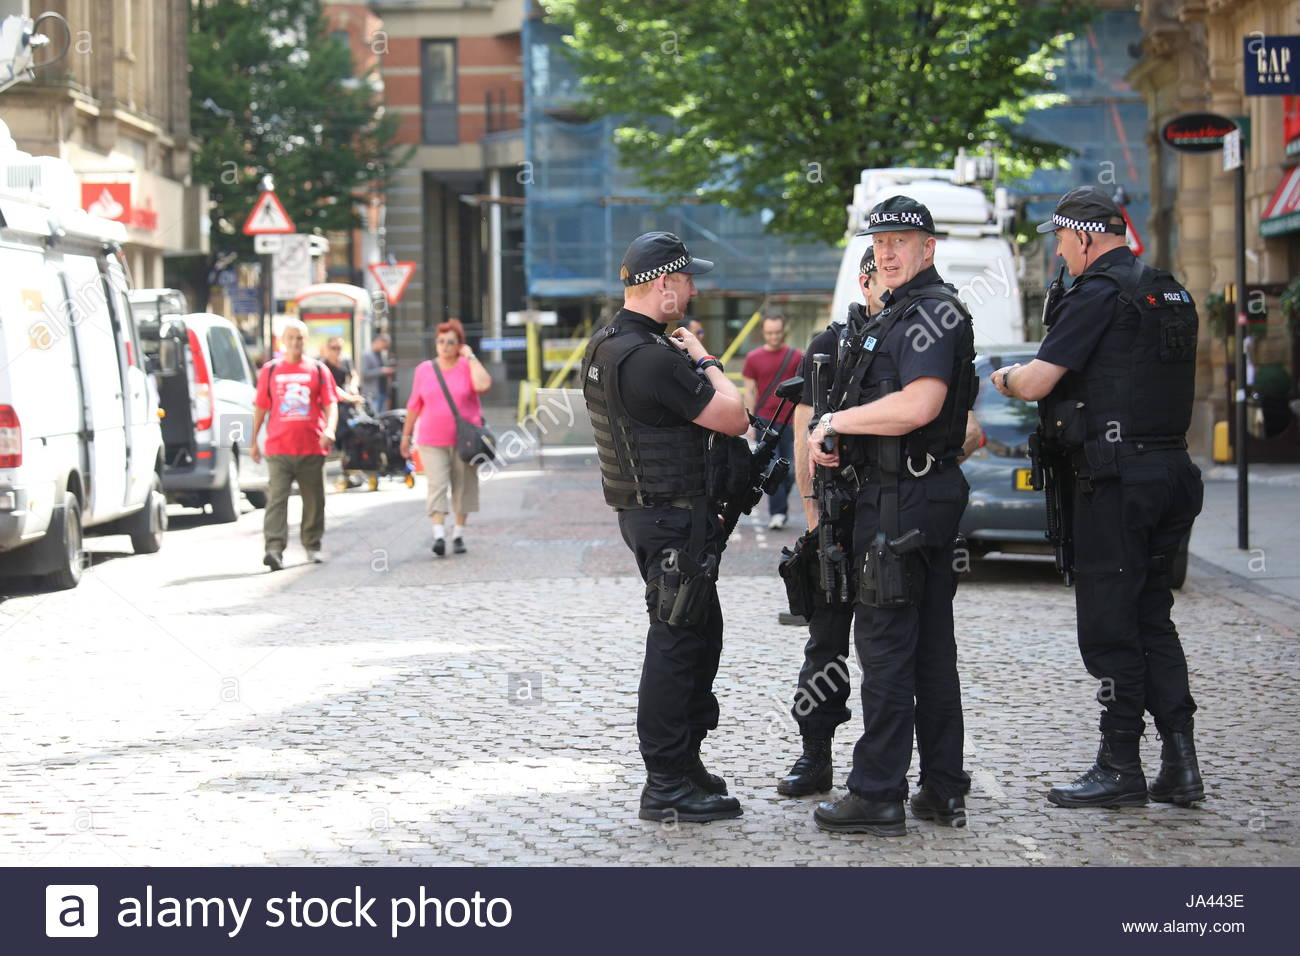 Armed policemen on the streets of Manchester, close to St Ann's square, as the terror threat intensifies. - Stock Image